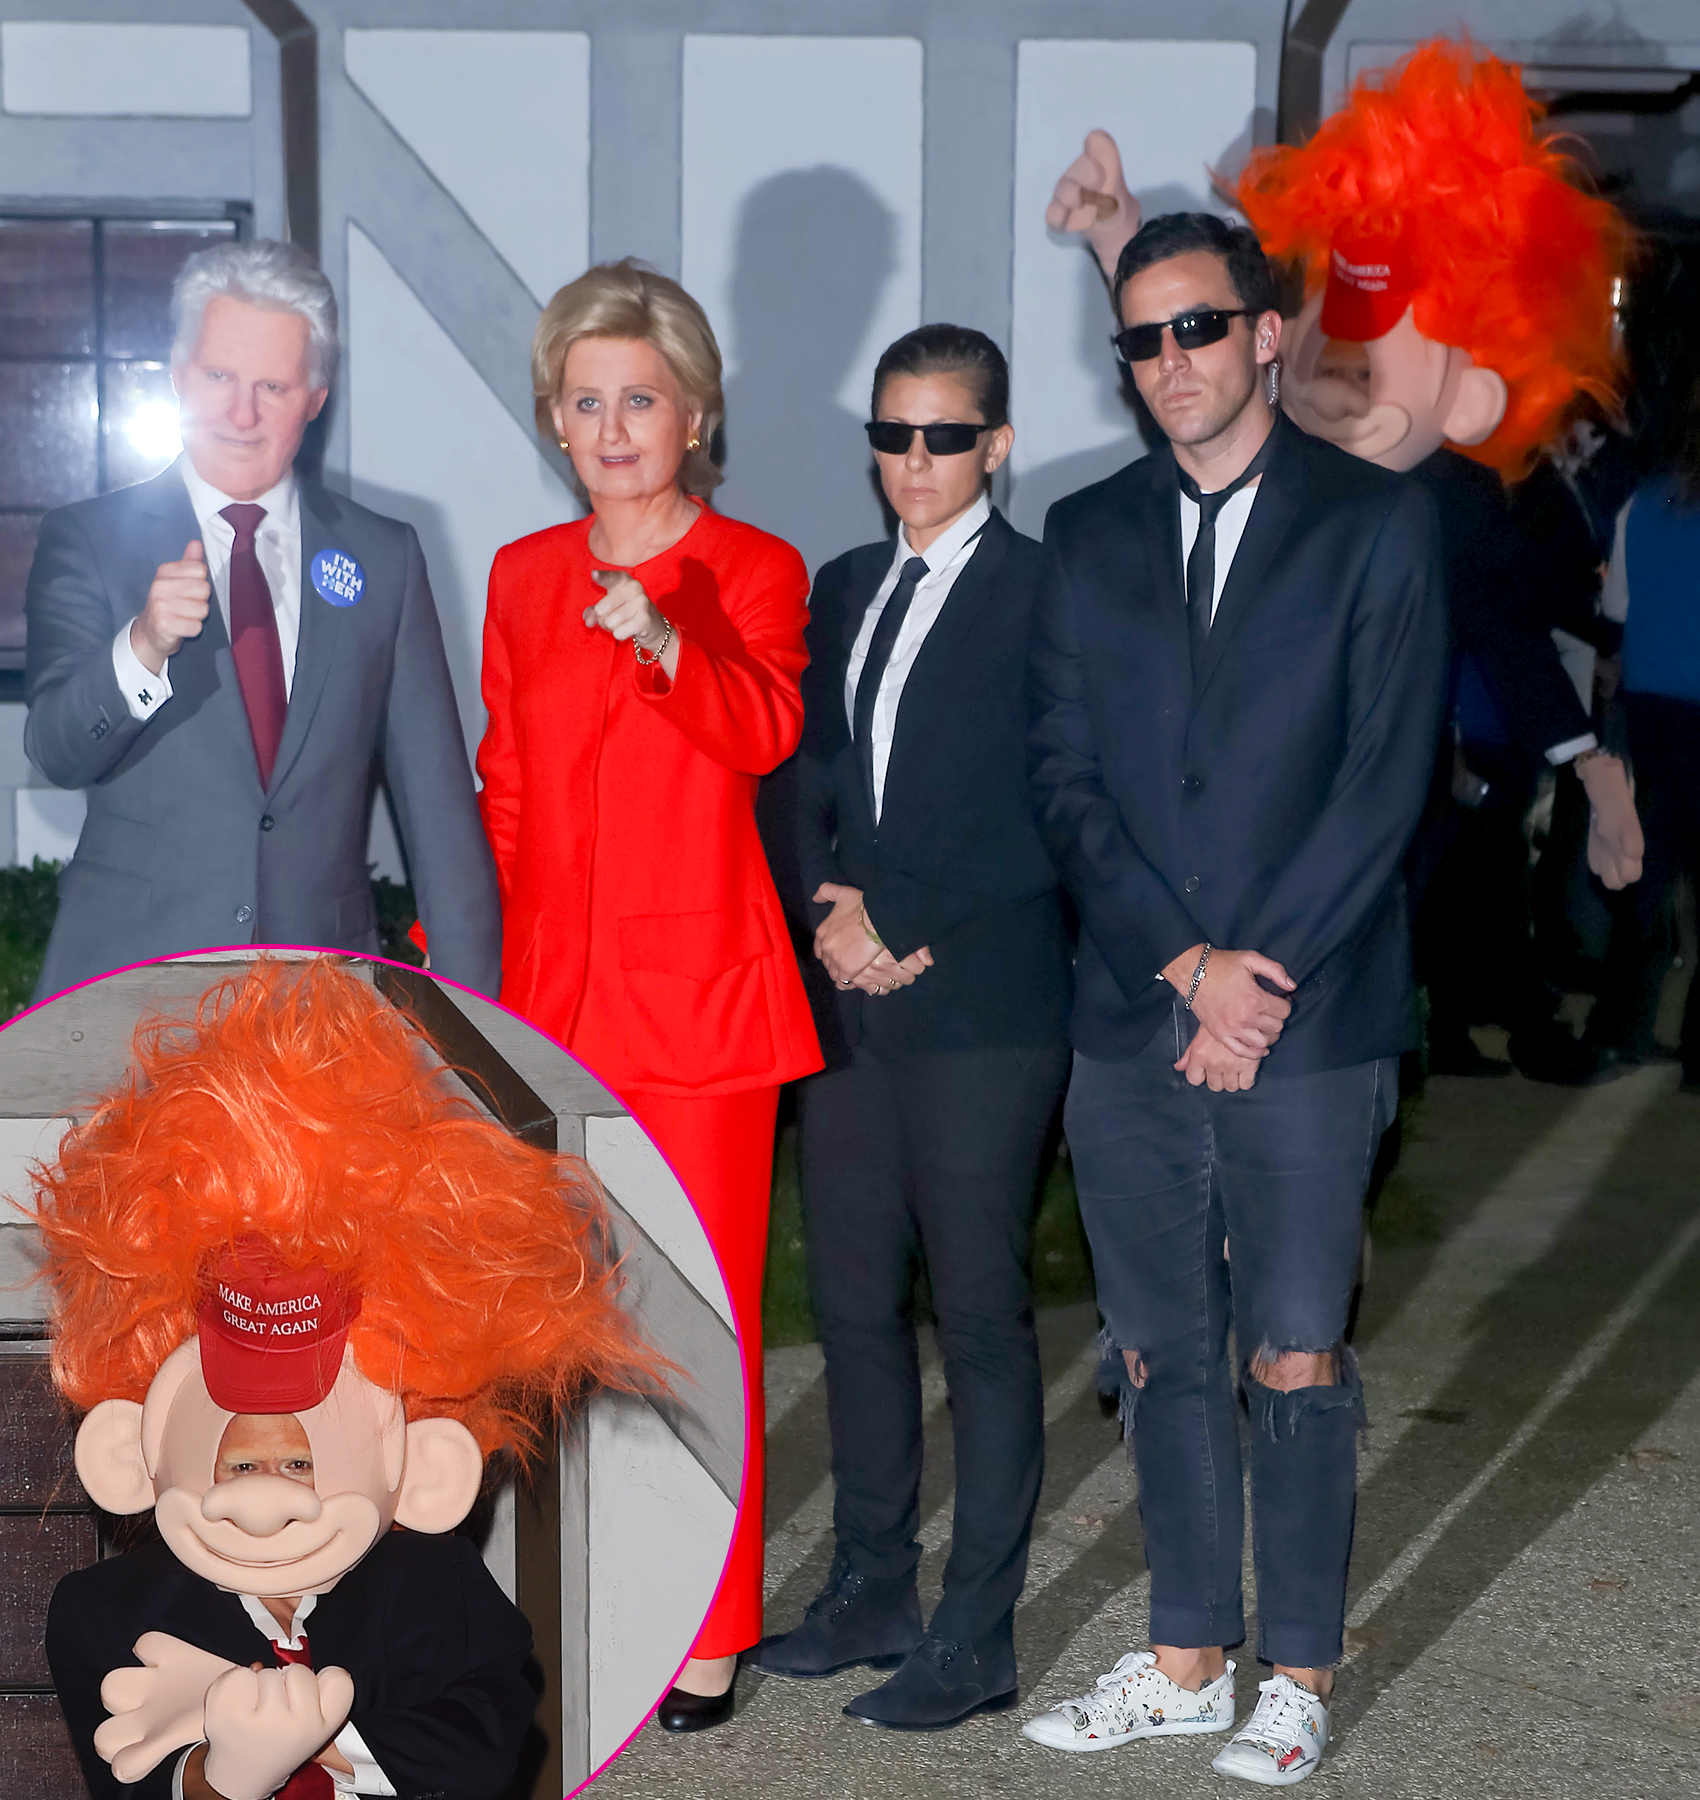 halloween katy perry orlando bloom - The lovebirds turned heads on Halloween when the Grammy nominee dressed as Hillary Clinton and the actor stepped out as Donald Trump ahead of the 2016 presidential election.